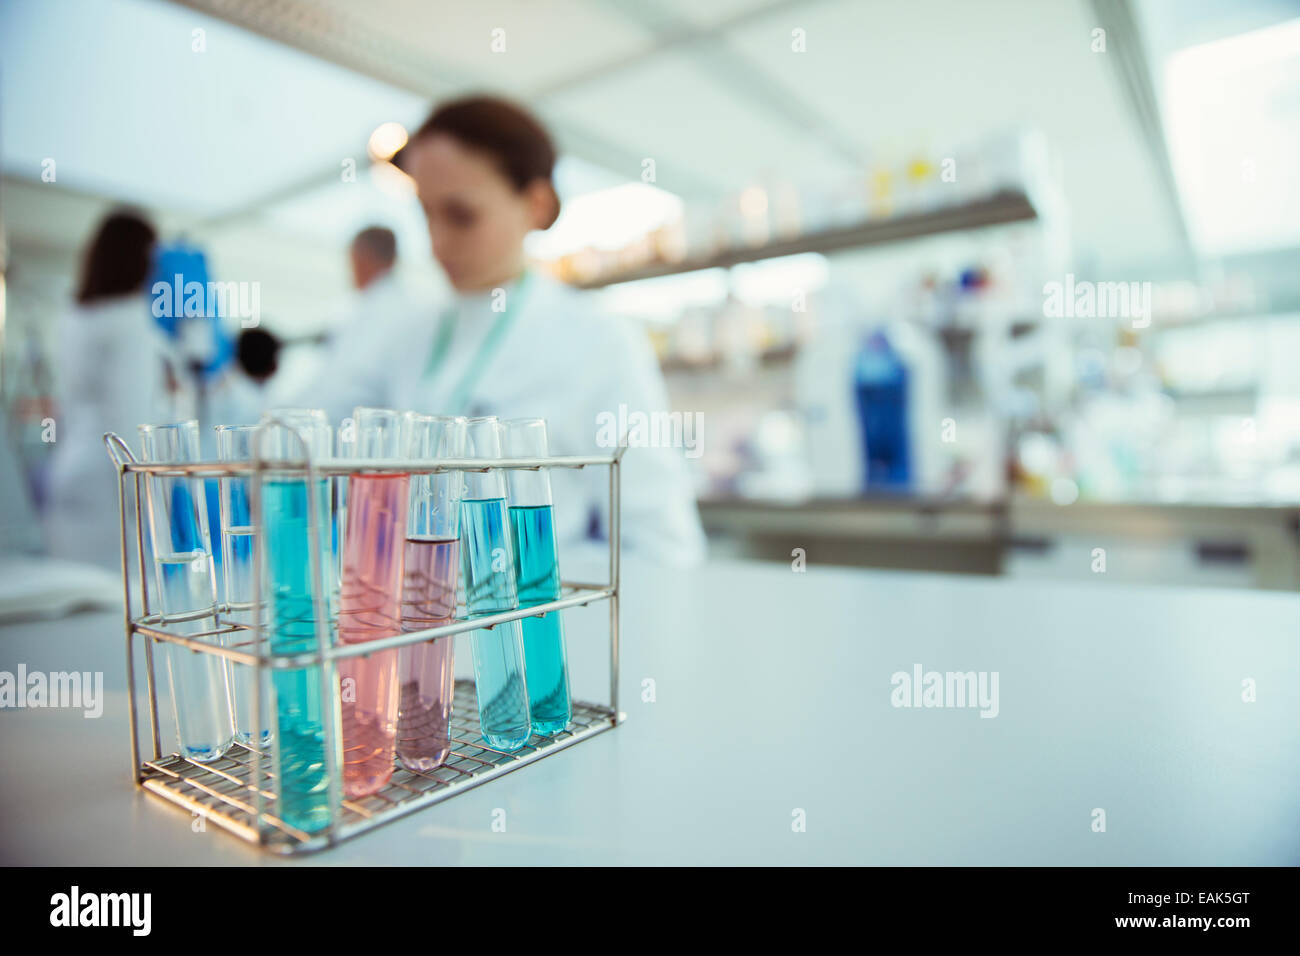 Close up of test tubes in rack in laboratory - Stock Image